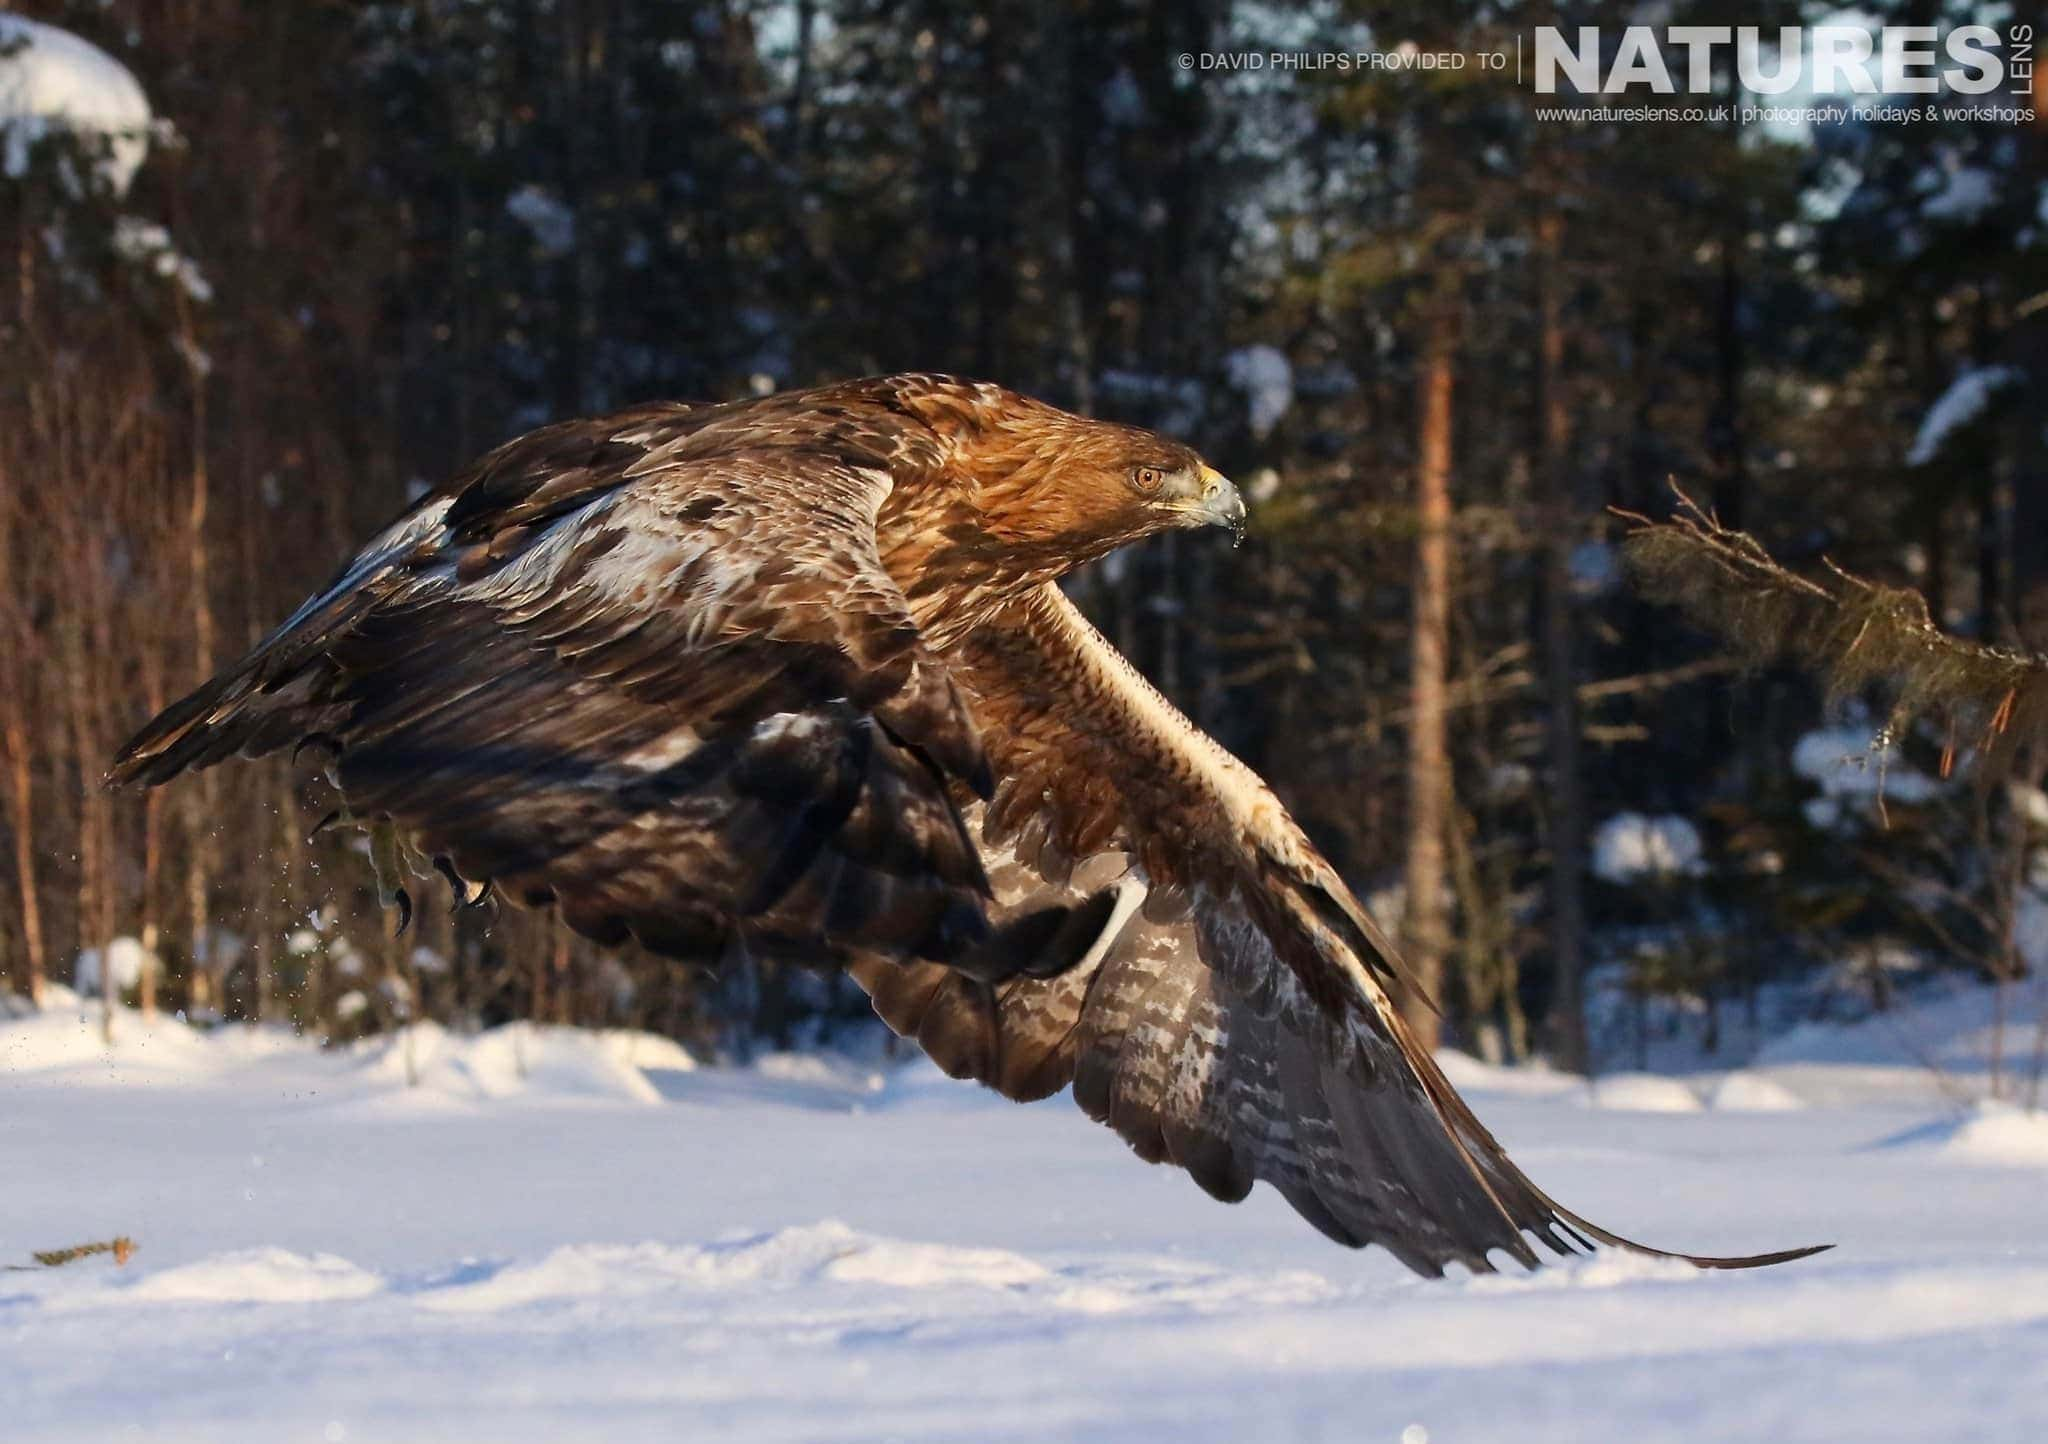 Flying In Beautiful Light, One Of The Golden Eagles Takes To The Air   Image Captured During The NaturesLens Golden Eagles Of The Swedish Winter Photography Holiday